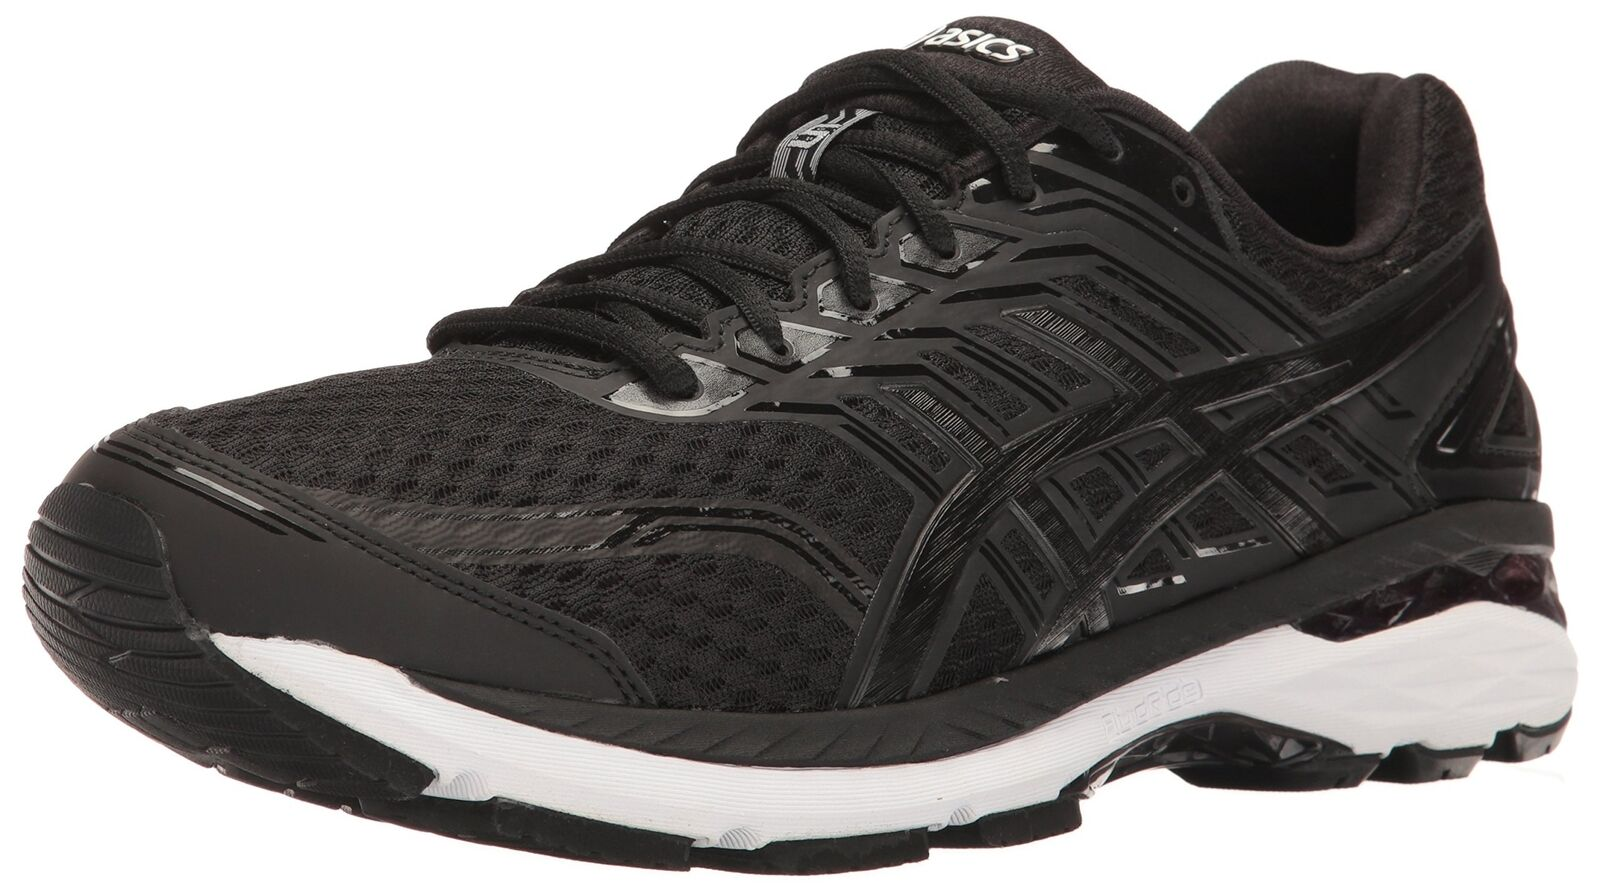 ASICS Men's GT-2000 5 Running shoes, Black Onyx White, 7 M US